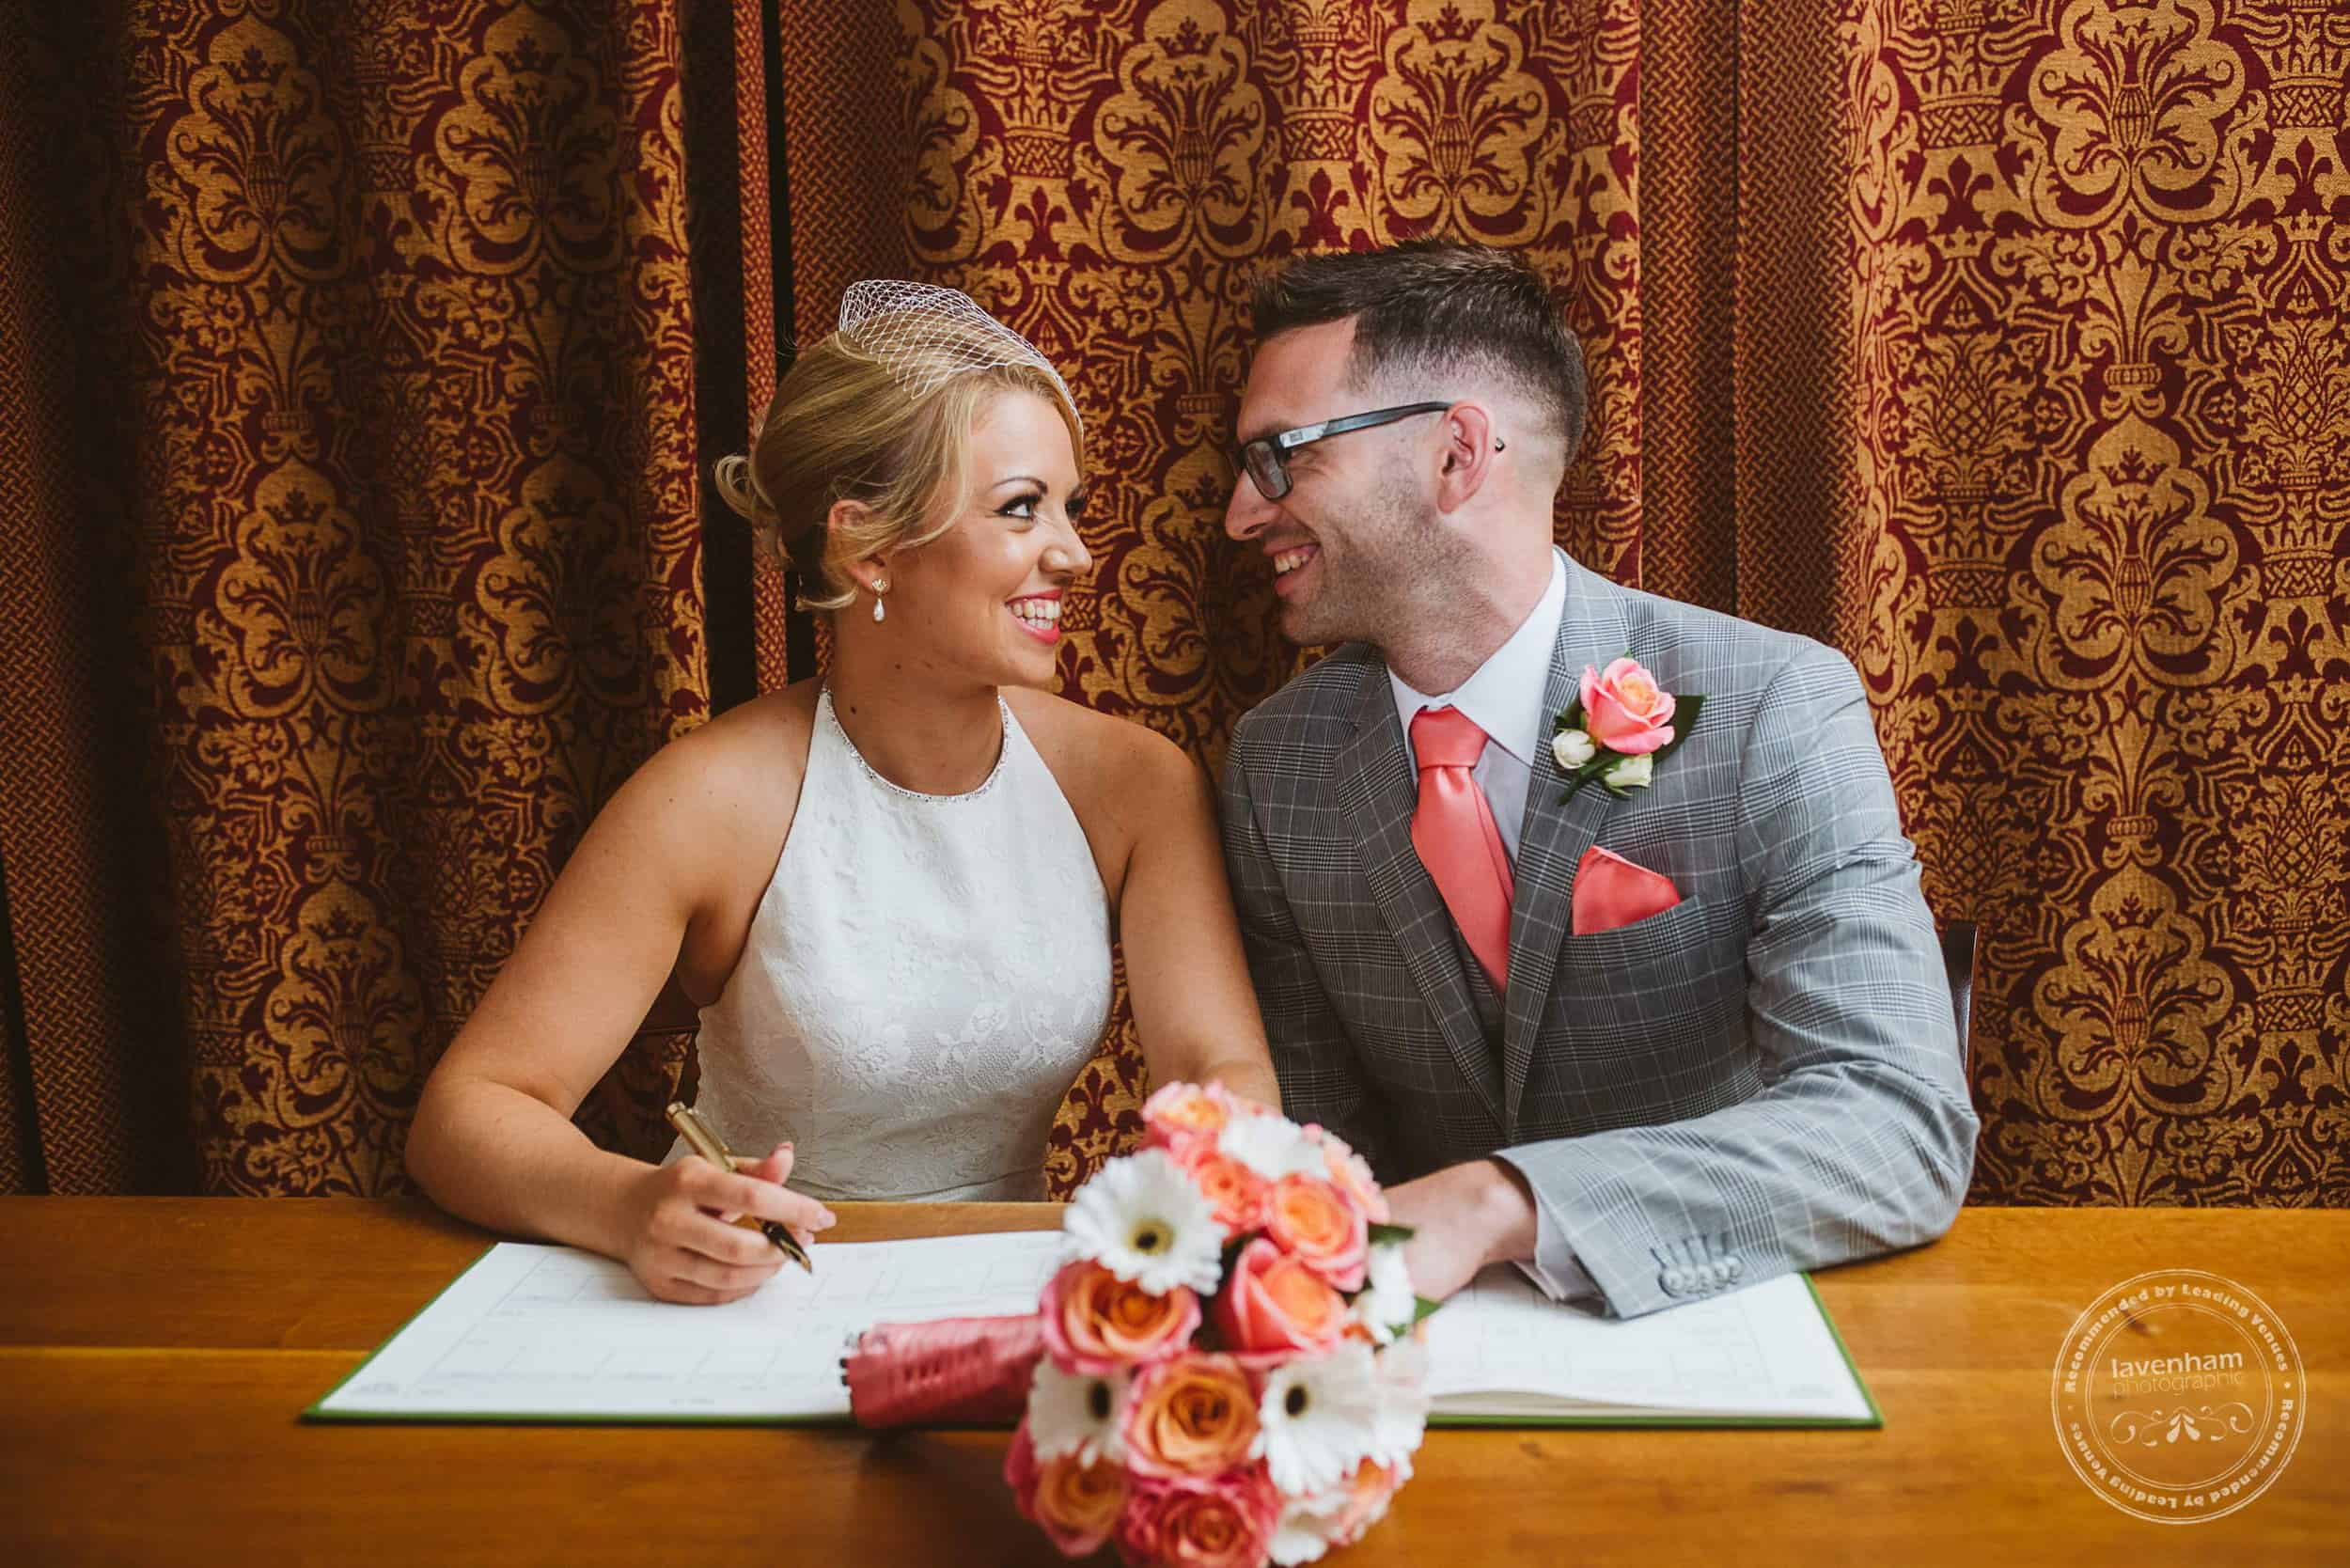 140717 Layer Marney Wedding Photography by Lavenham Photographic 045